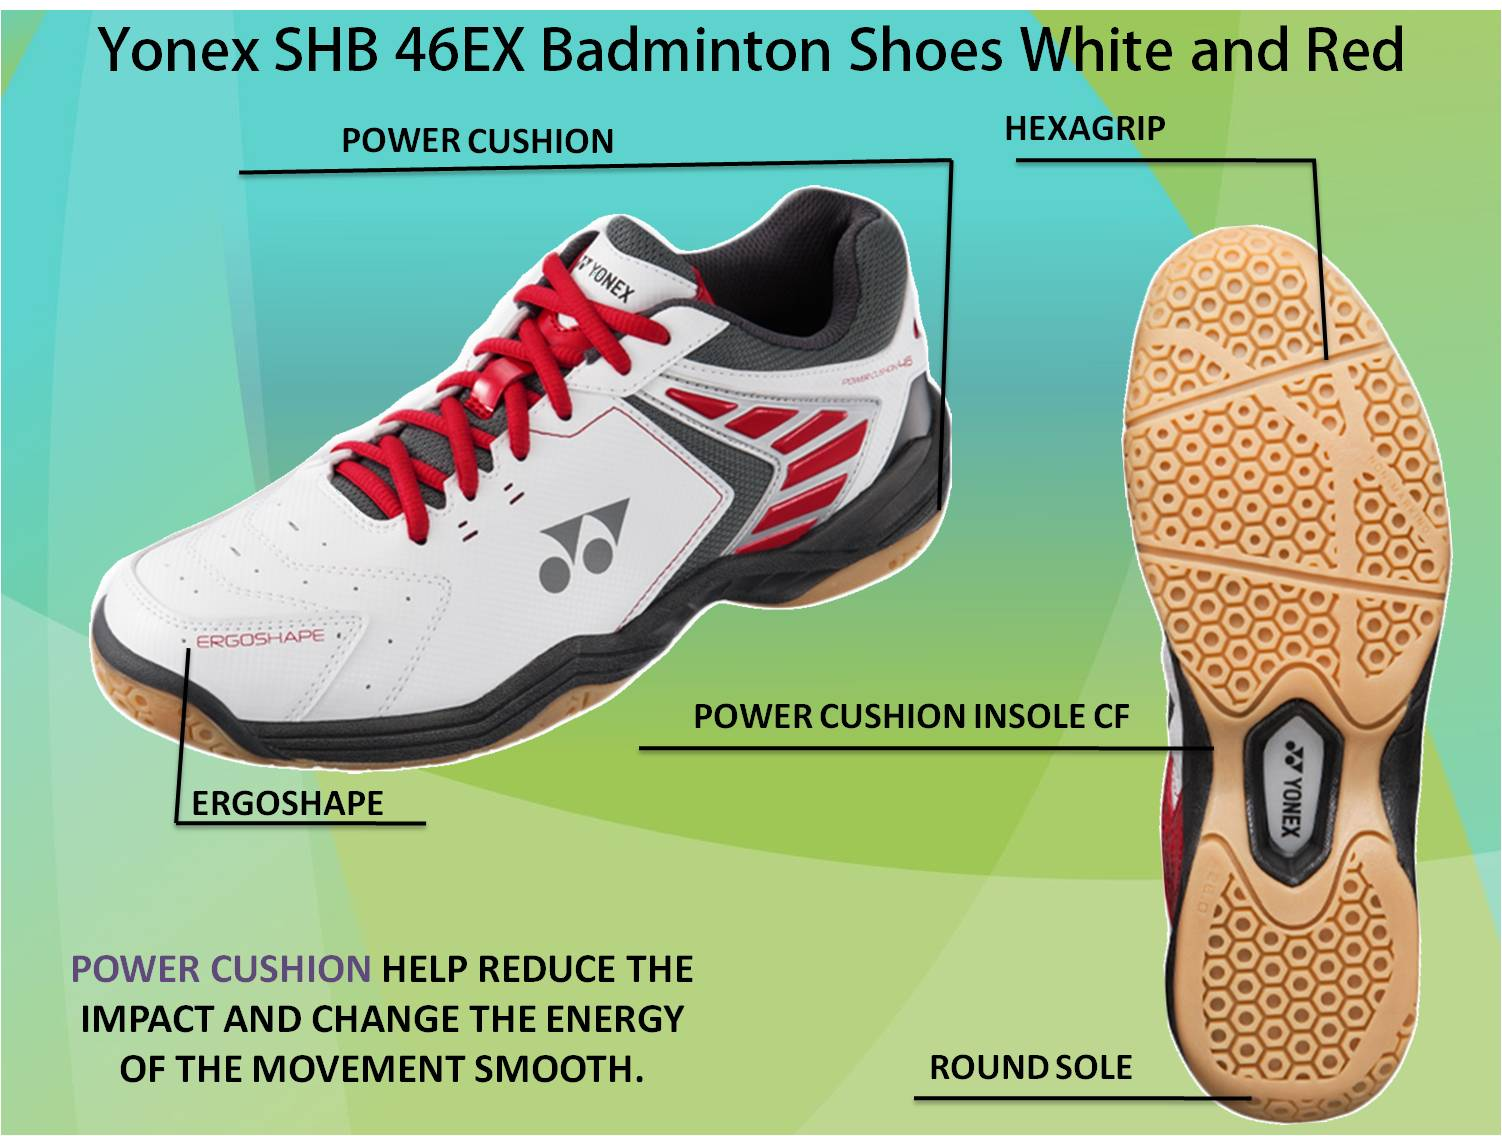 Yonex SHB 46 EX Badminton Shoes White and Red